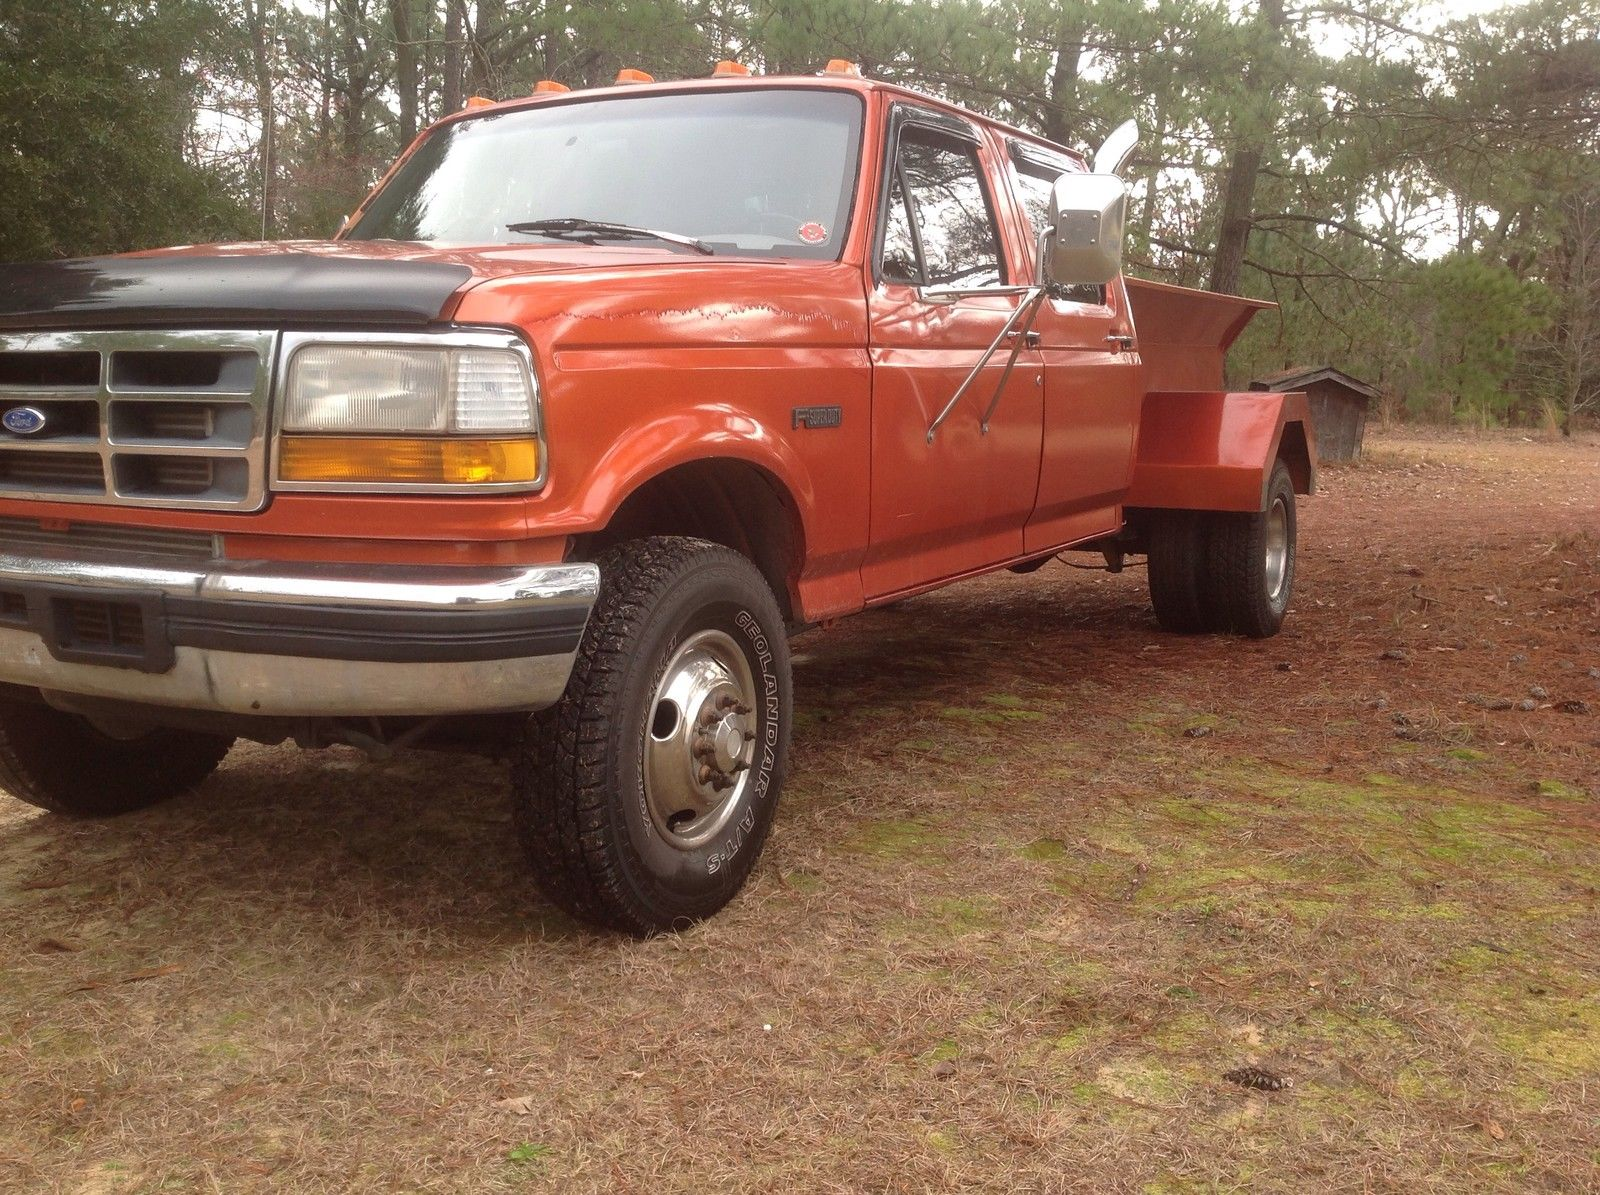 1994 F350 7 3 Powerstroke Diesel F250 Super Duty For Sale In Florence  South Carolina  United